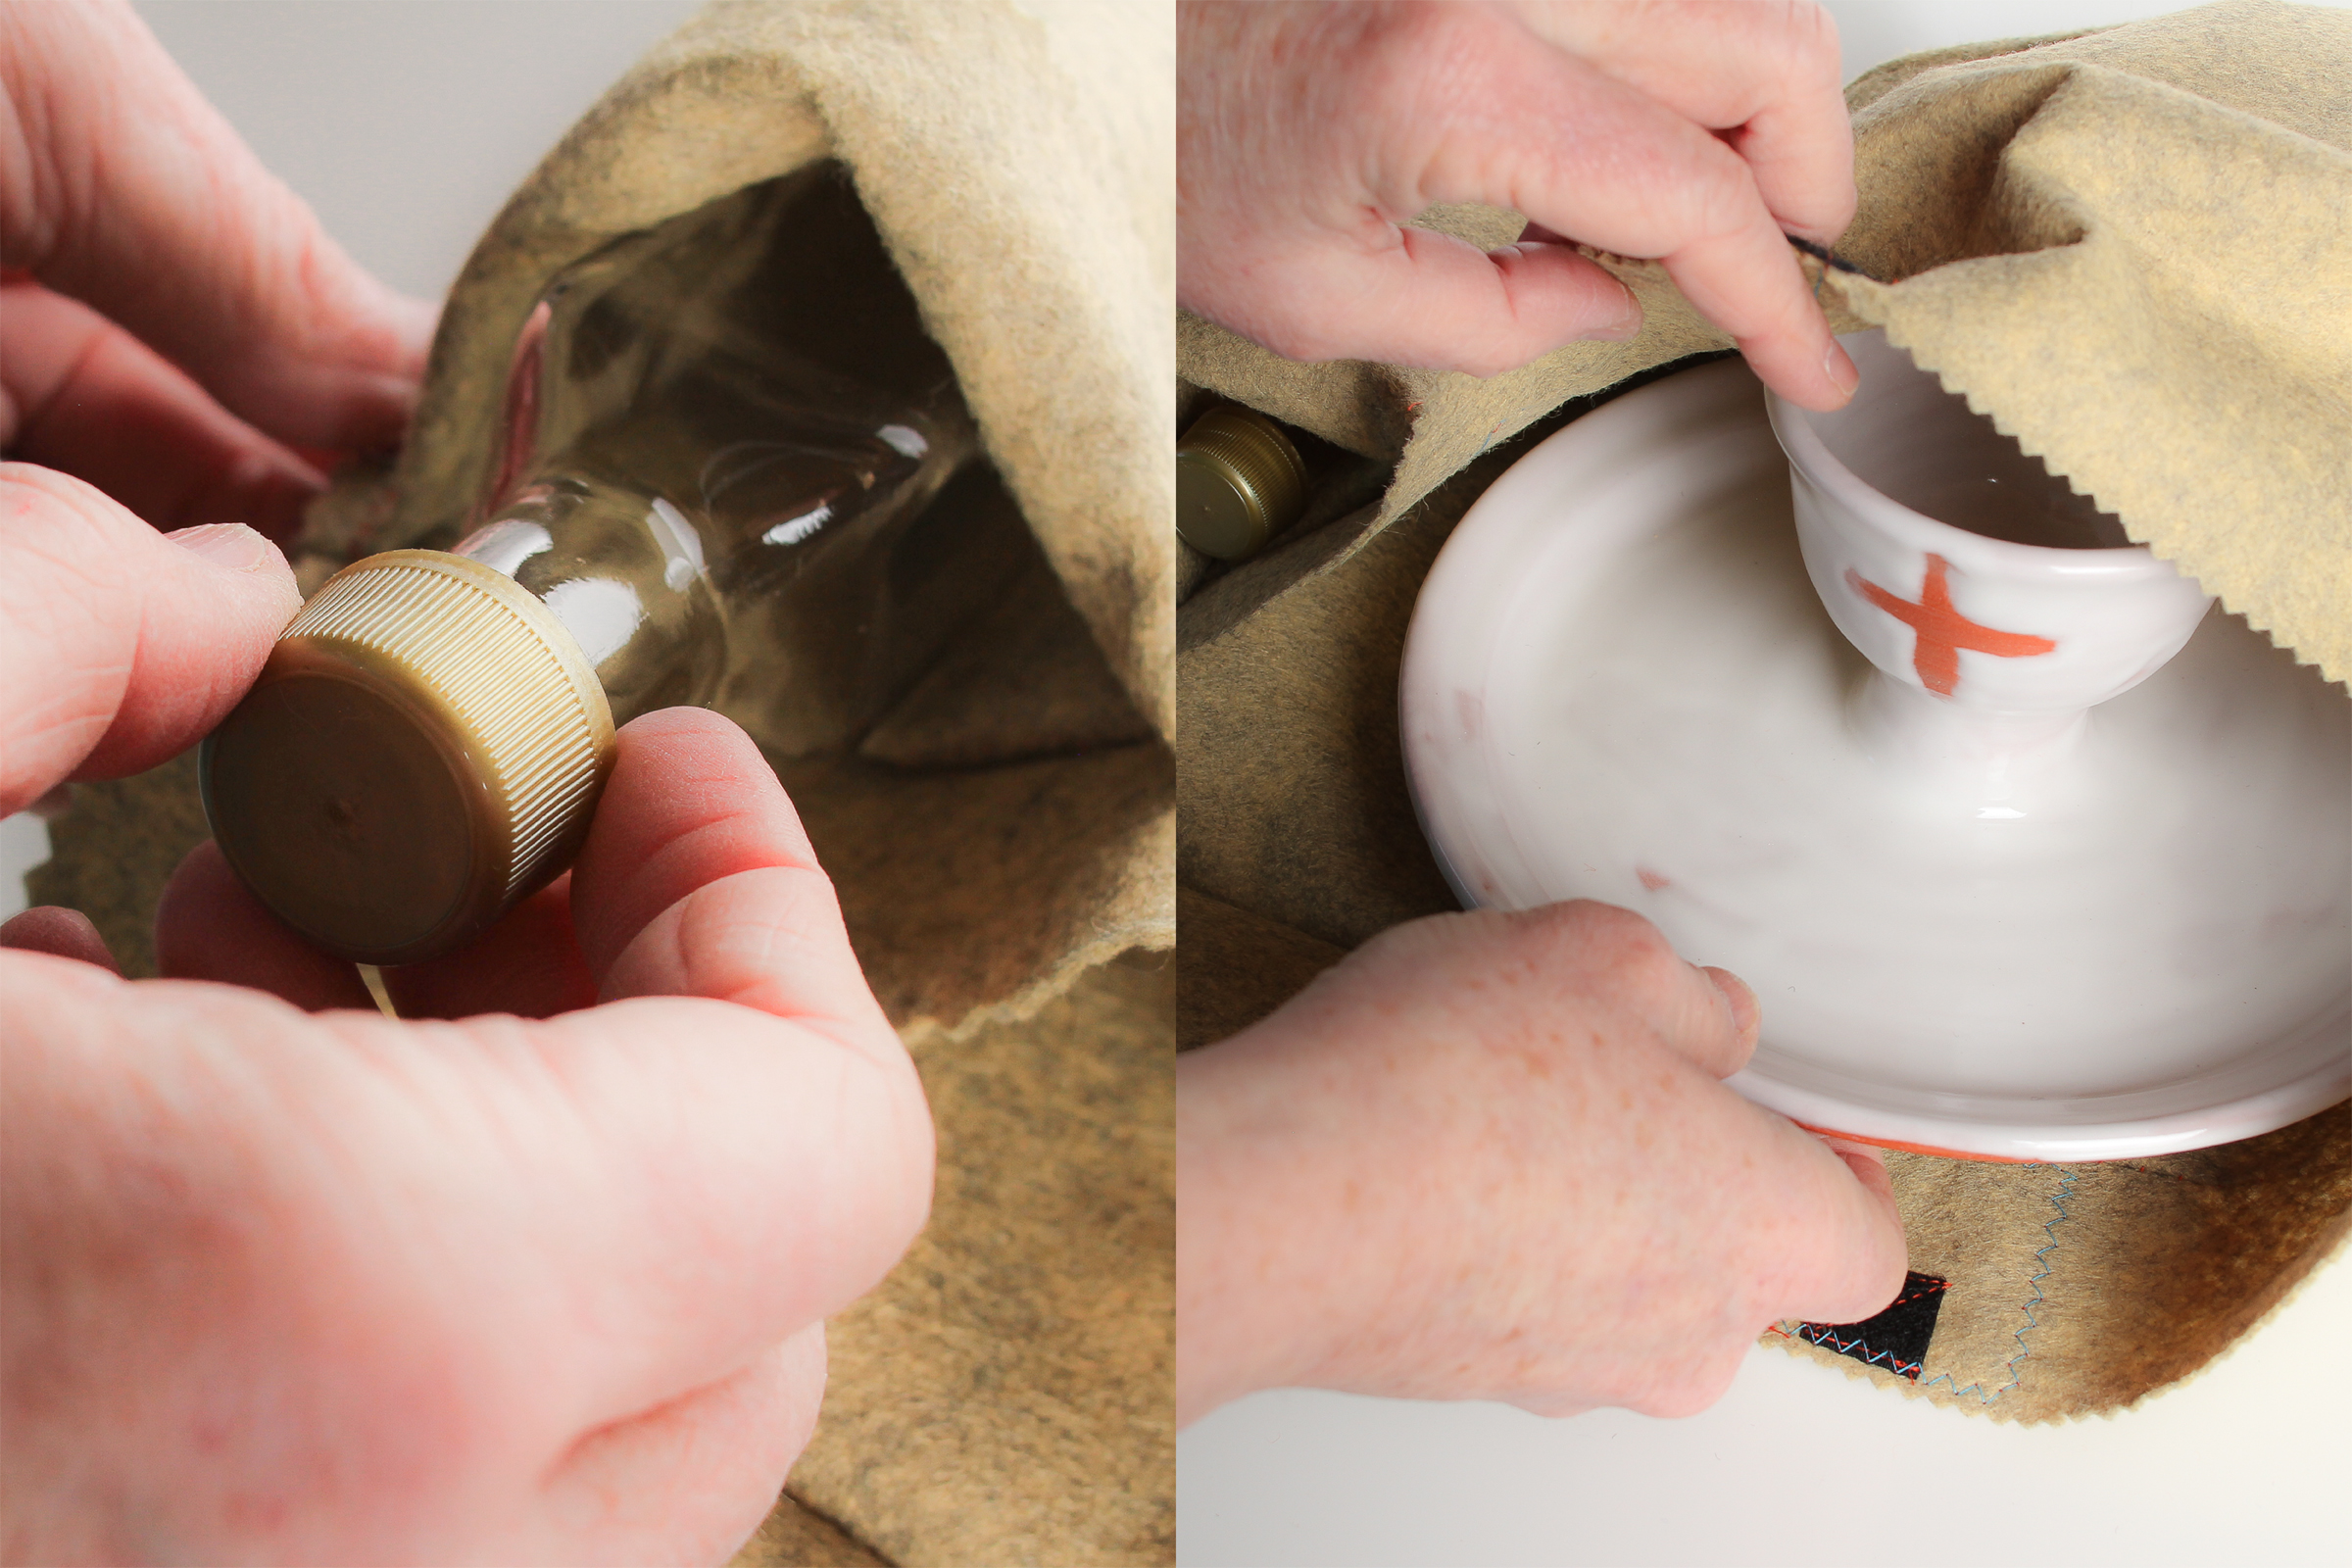 Natural Clay Cross Ceramic One-Handed Communion Set